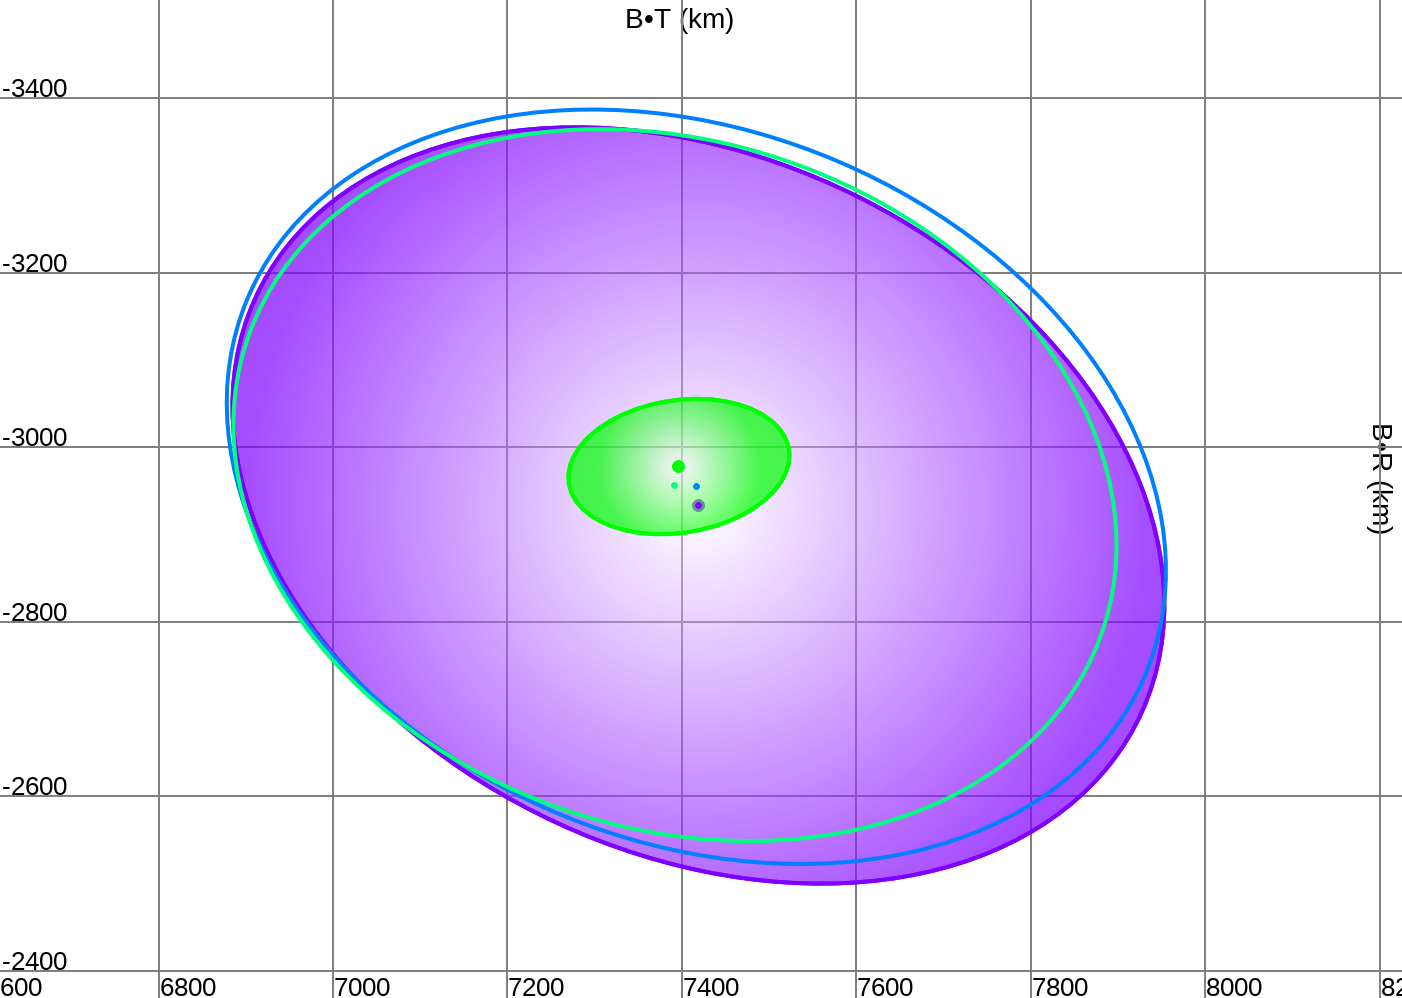 Spacecraft uncertainty ellipses on approach to Mars